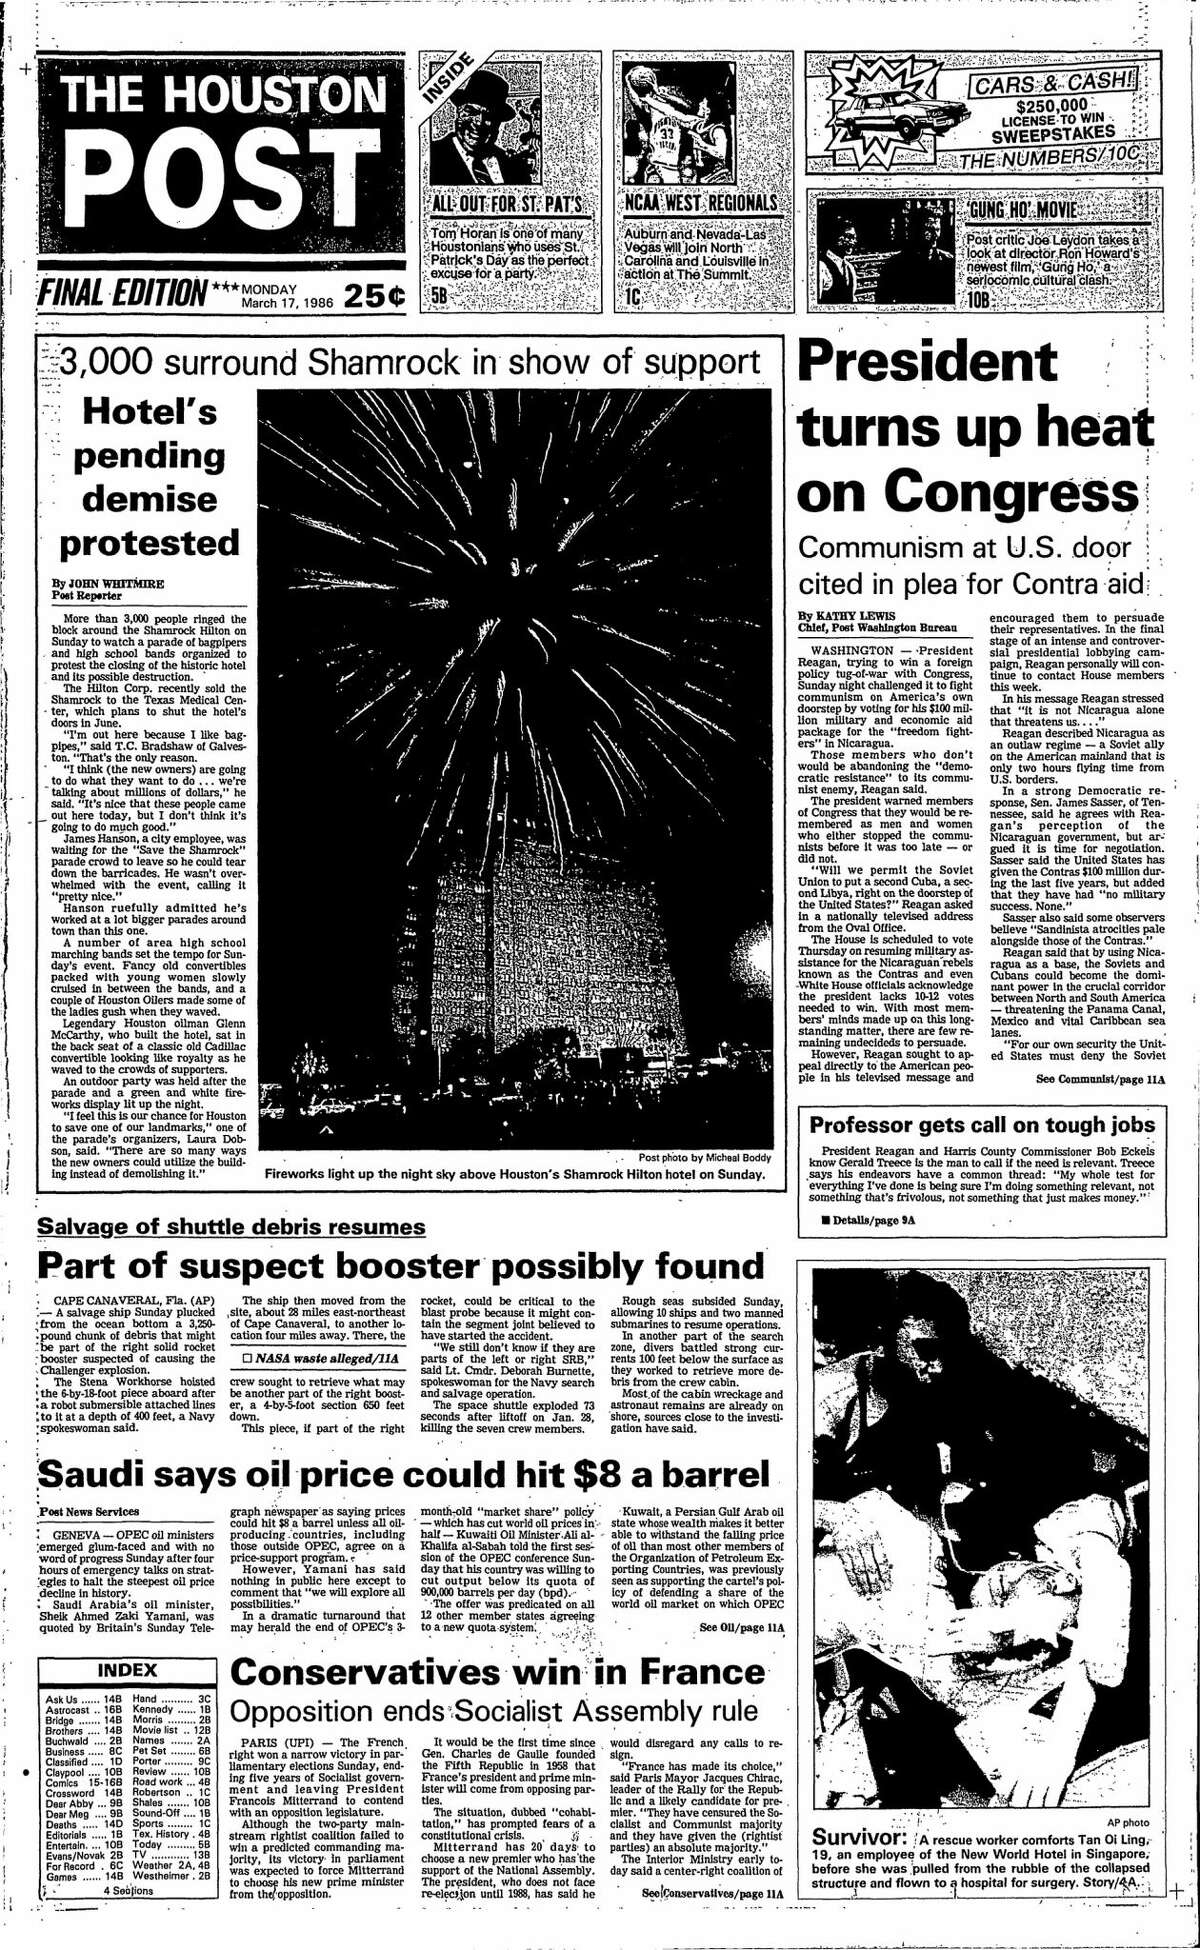 Houston Post front page from March 17, 1986.